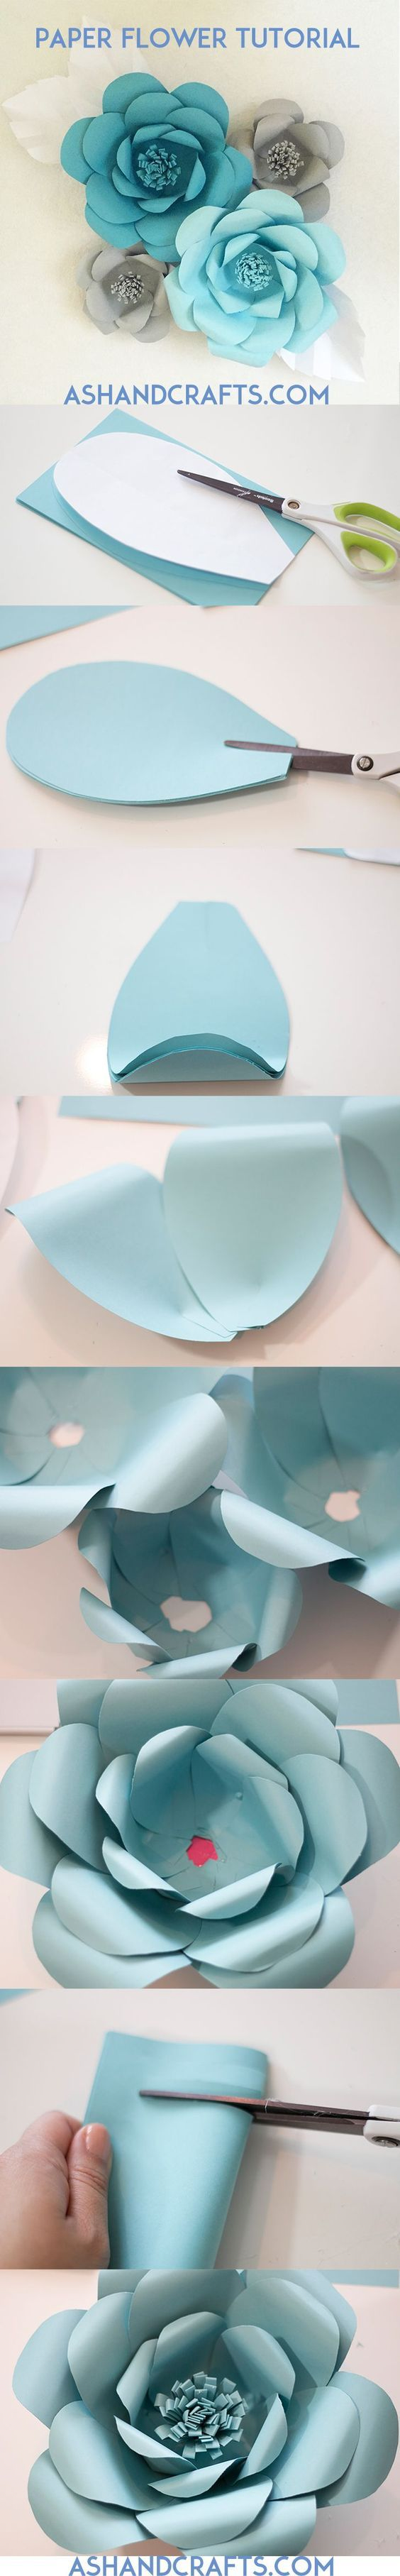 Paper Flower Tutorial with Template - Ashandcrafts.com: